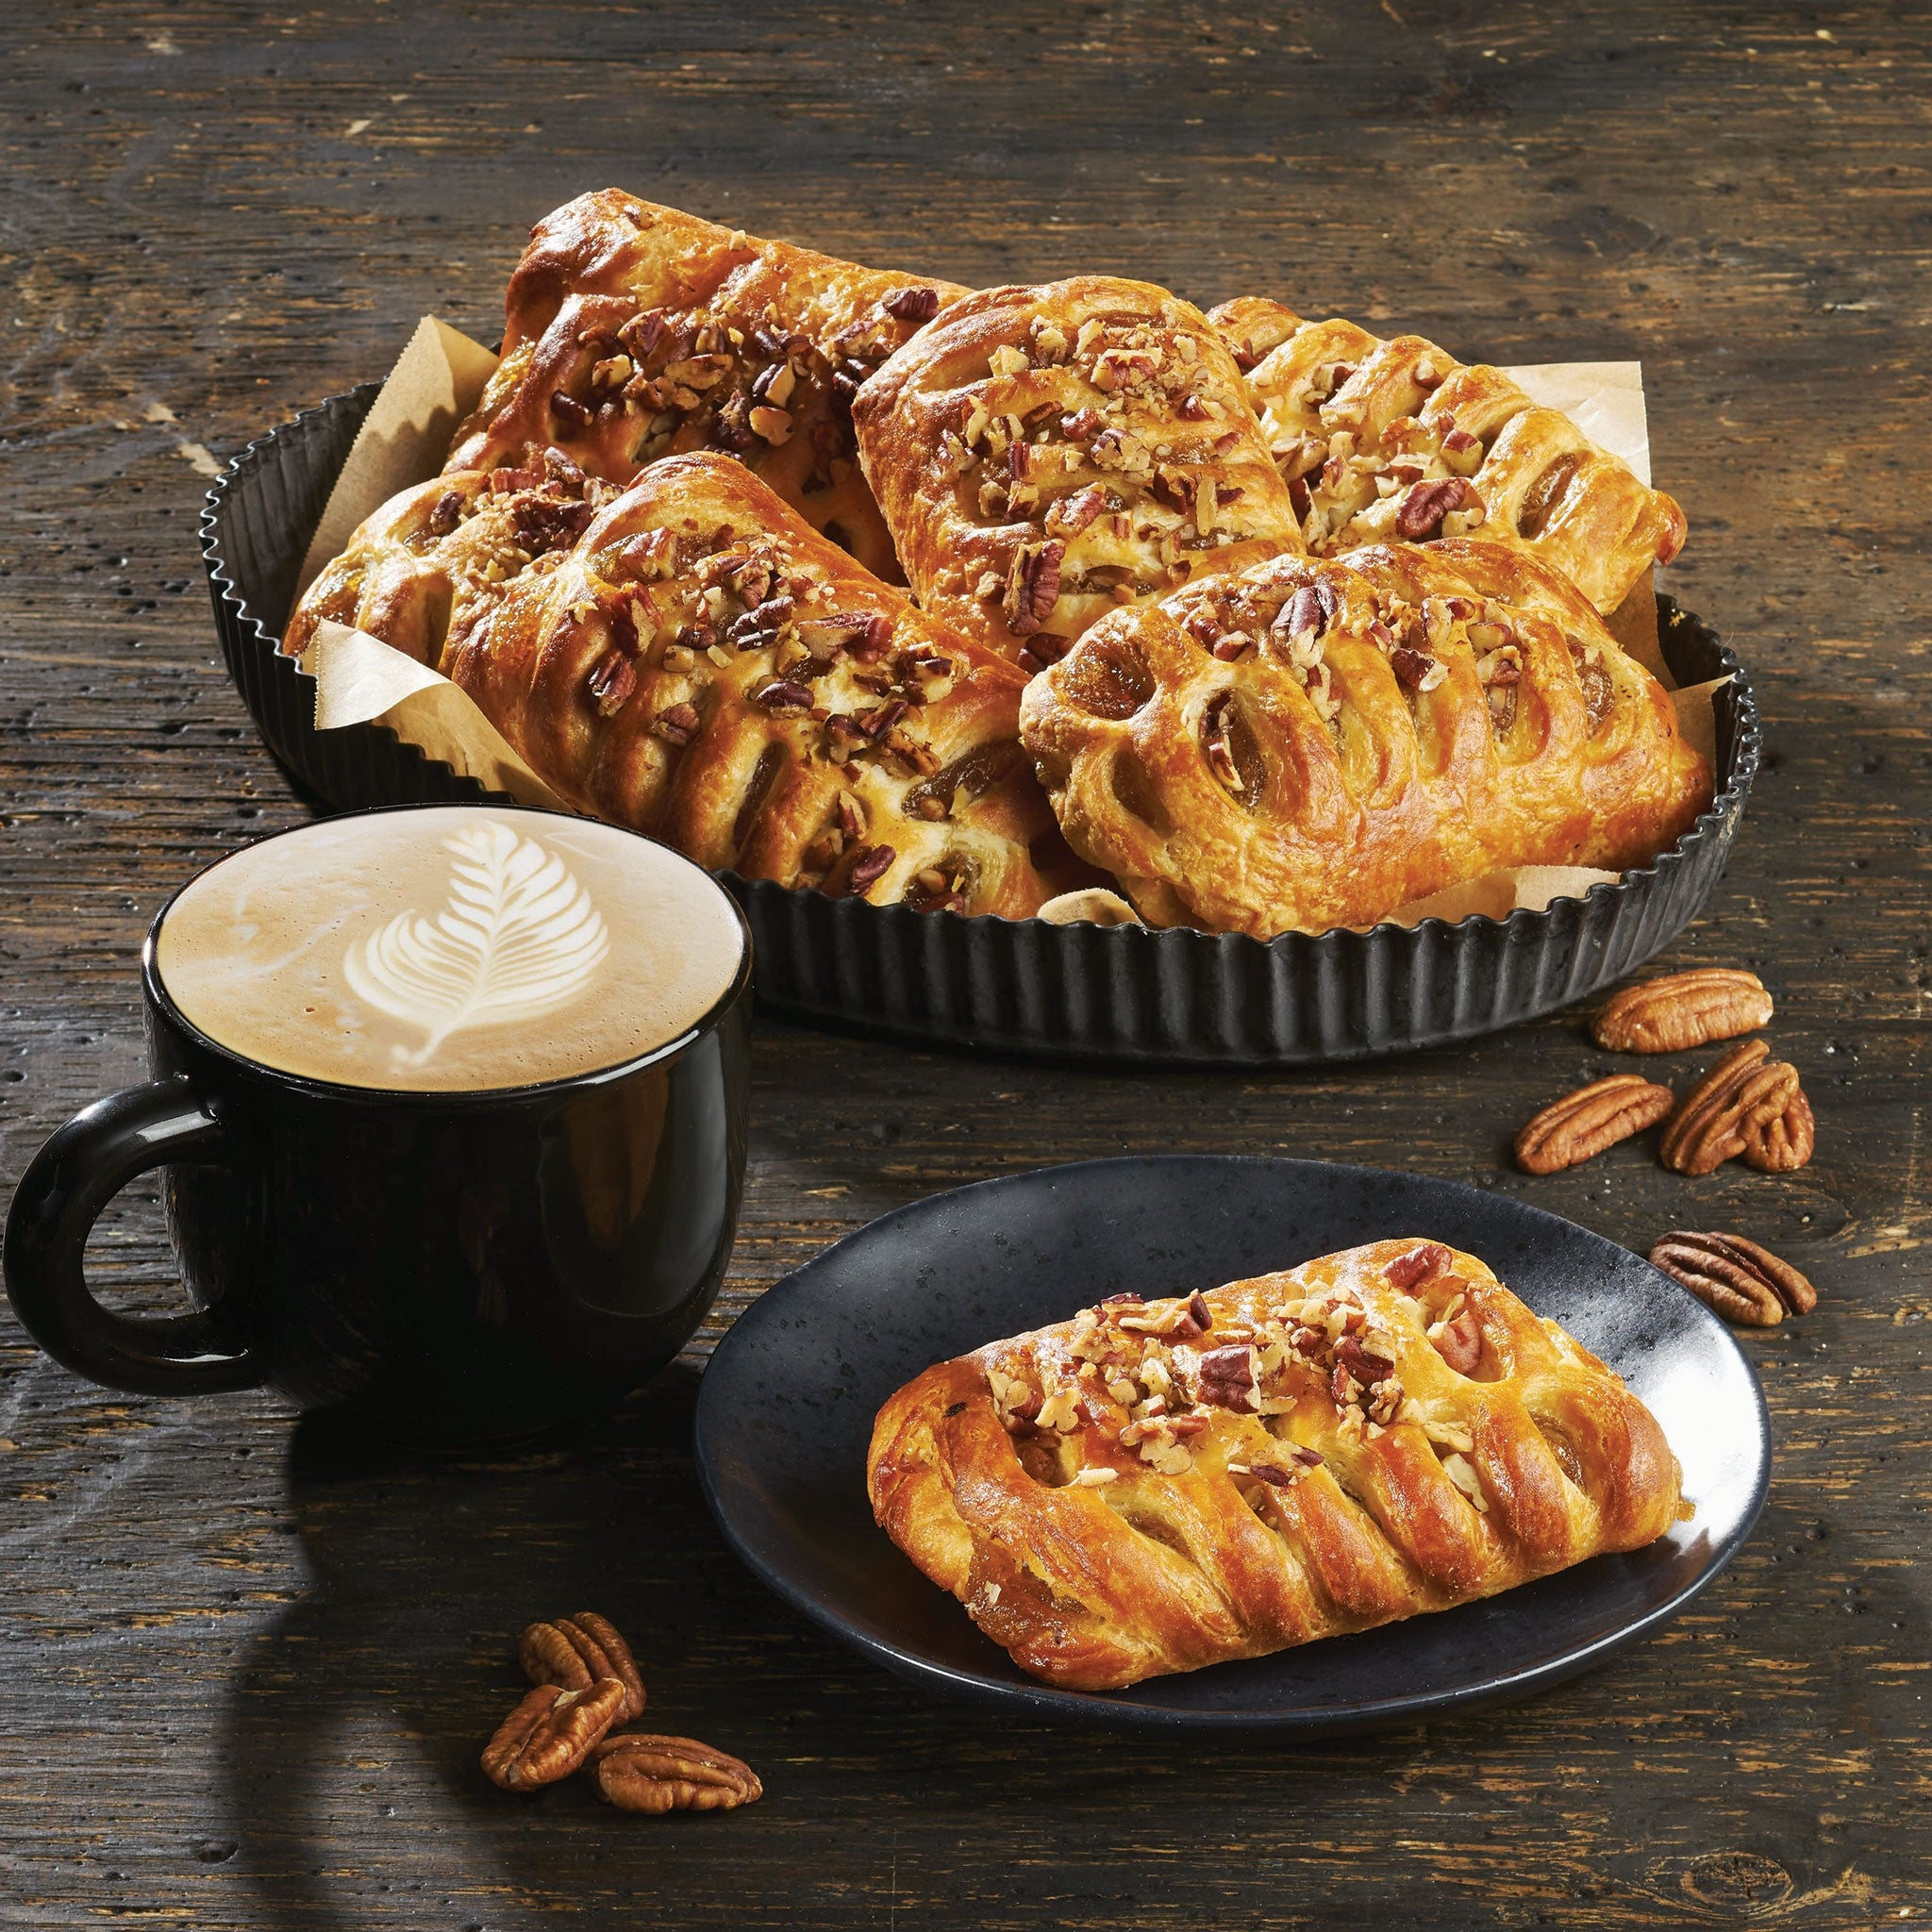 Bridor Frozen Maple Pecan Butter Danish 90 g Ready to Bake - 40 Pack [$1.49/each]